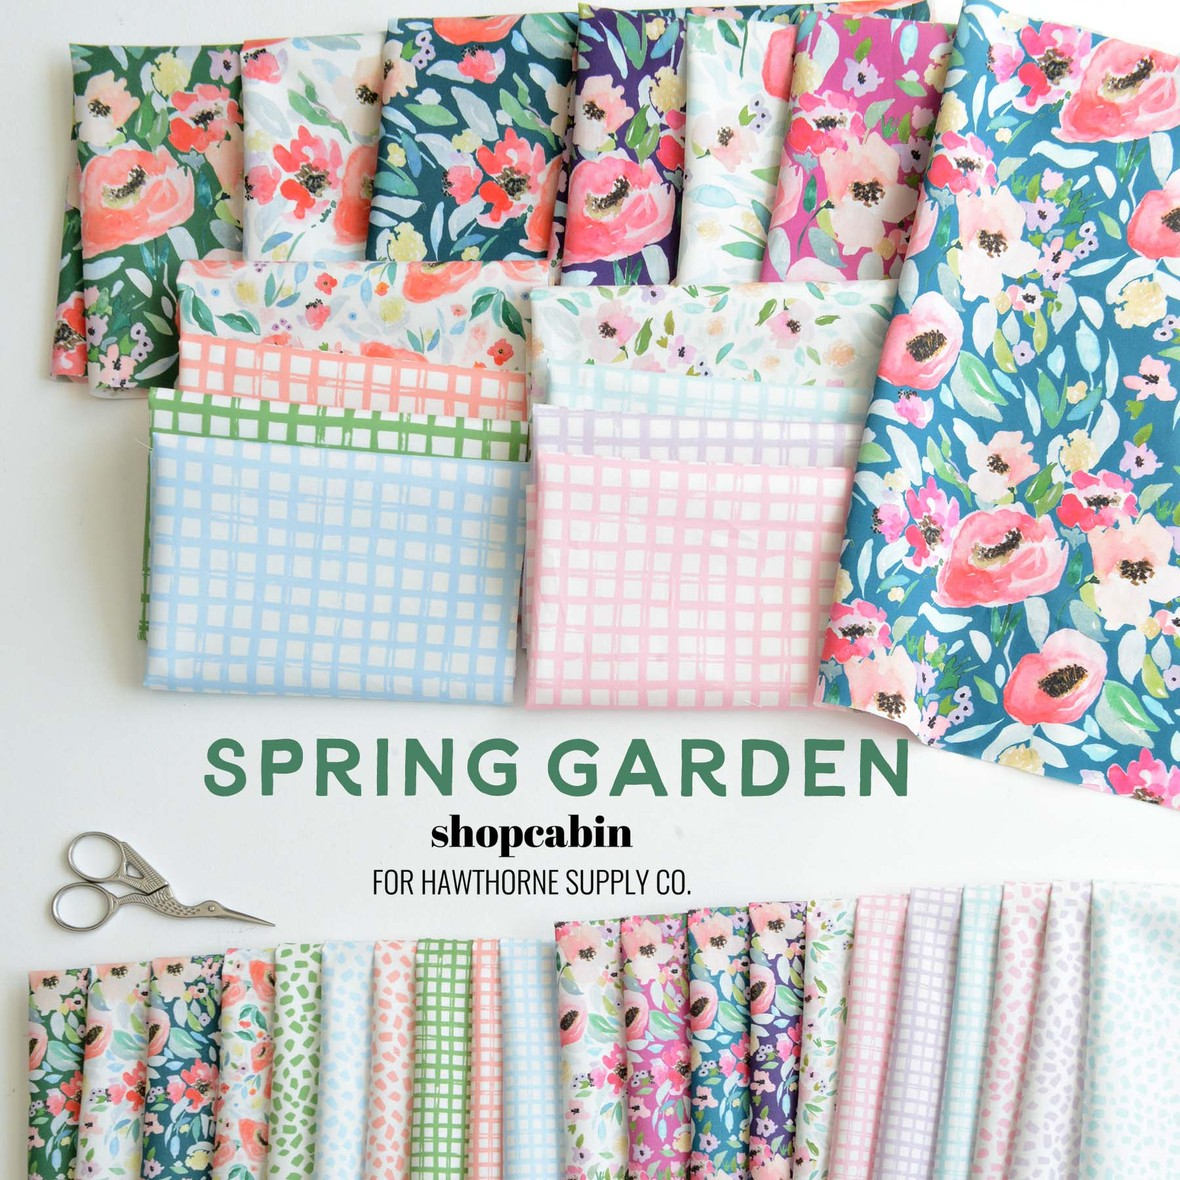 Spring Garden Fabric Poster Shopcabin at Hawthorne Supply Co.